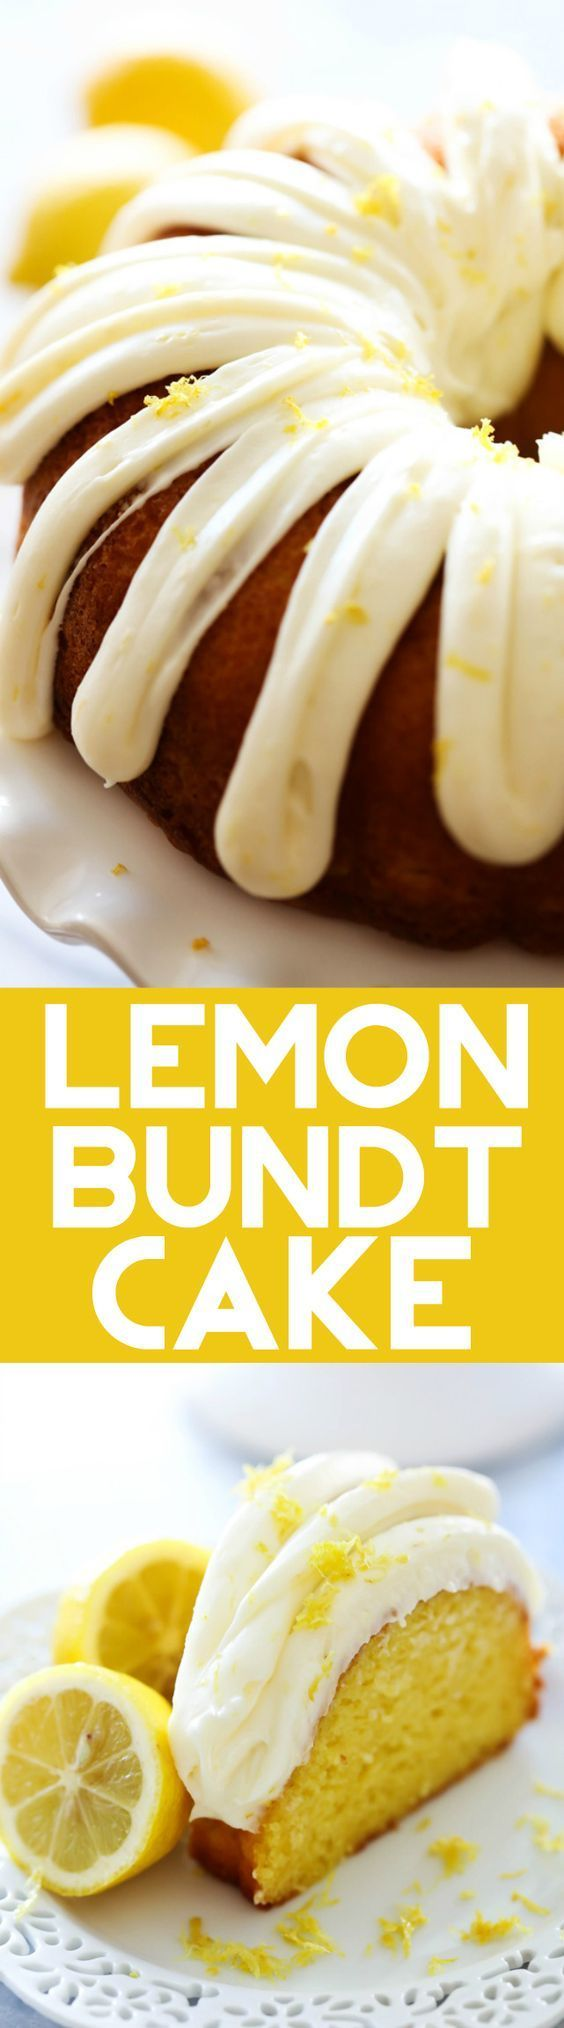 "The BEST Frosted Lemon Bundt Cake Recipe via Chef in Training - ""This Lemon Bundt Cake is bursting with refreshing and delicious flavor! It will be one of the moistest cakes you ever have the pleasure of trying! The frosting is AMAZING!"" The BEST Easy Lemon Desserts and Treats Recipes - Perfect For Easter, Mother's Day Brunch, Bridal or Baby Showers and Pretty Spring and Summer Holiday Party Refreshments!"